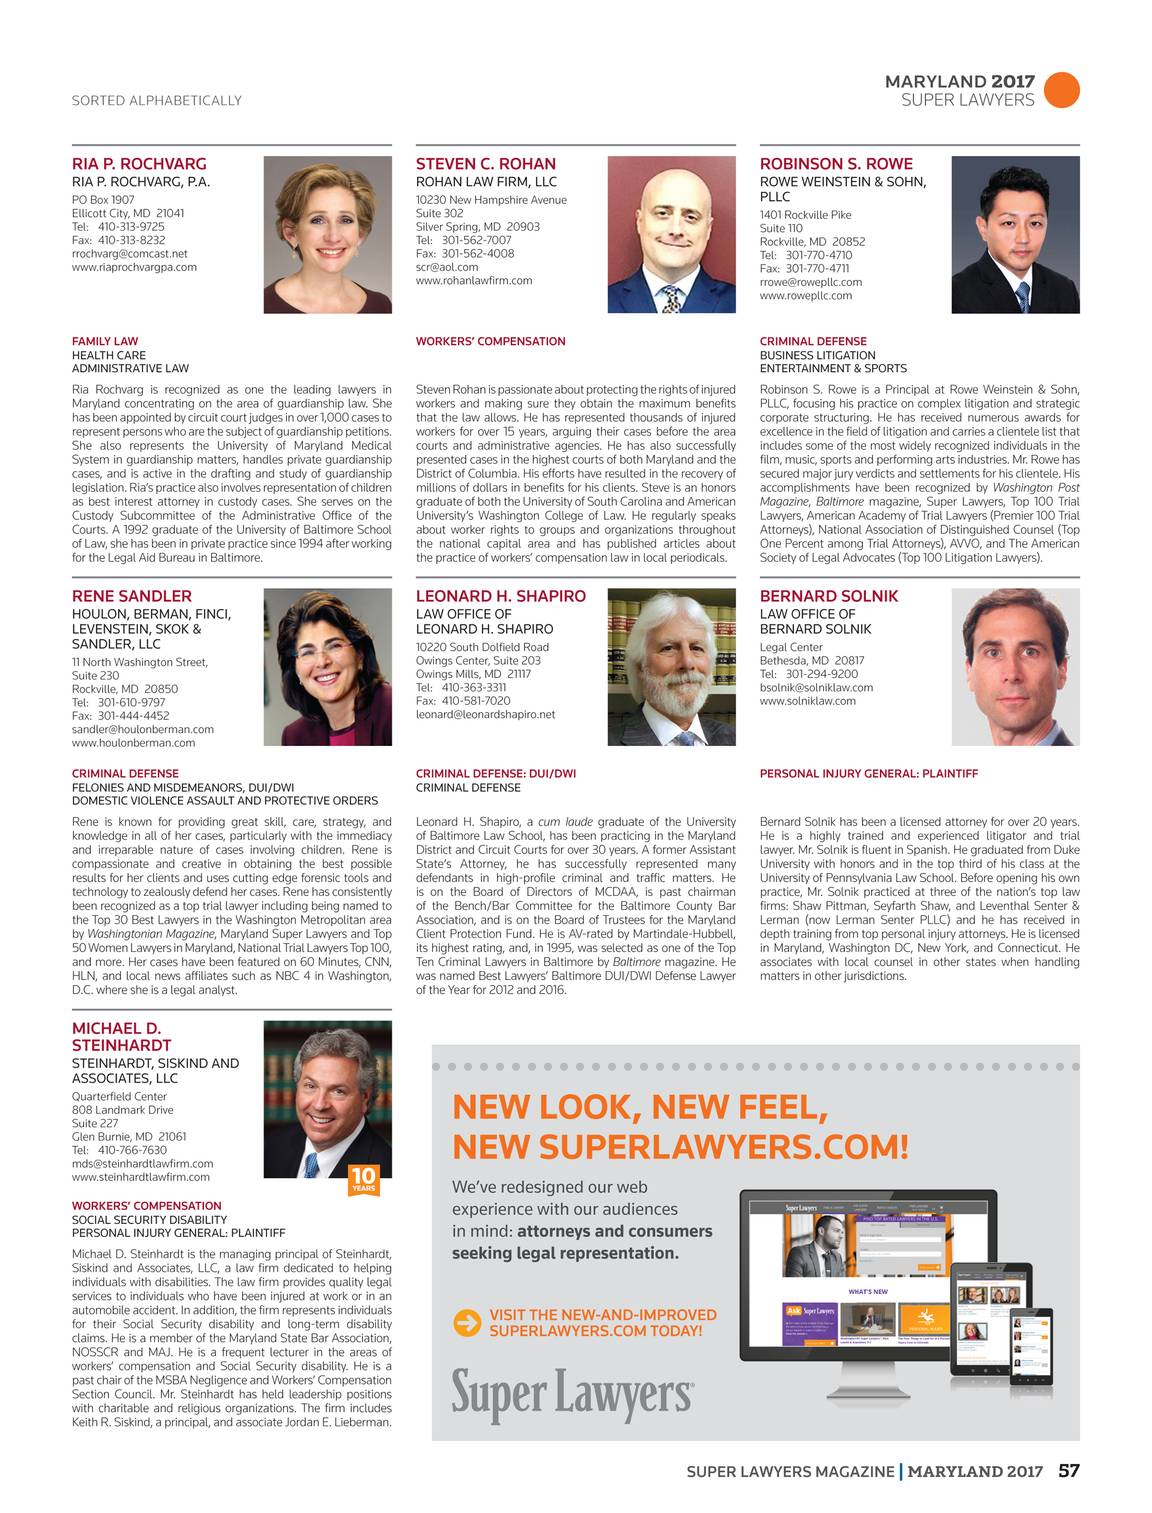 Super Lawyers - Maryland 2017 - page 56